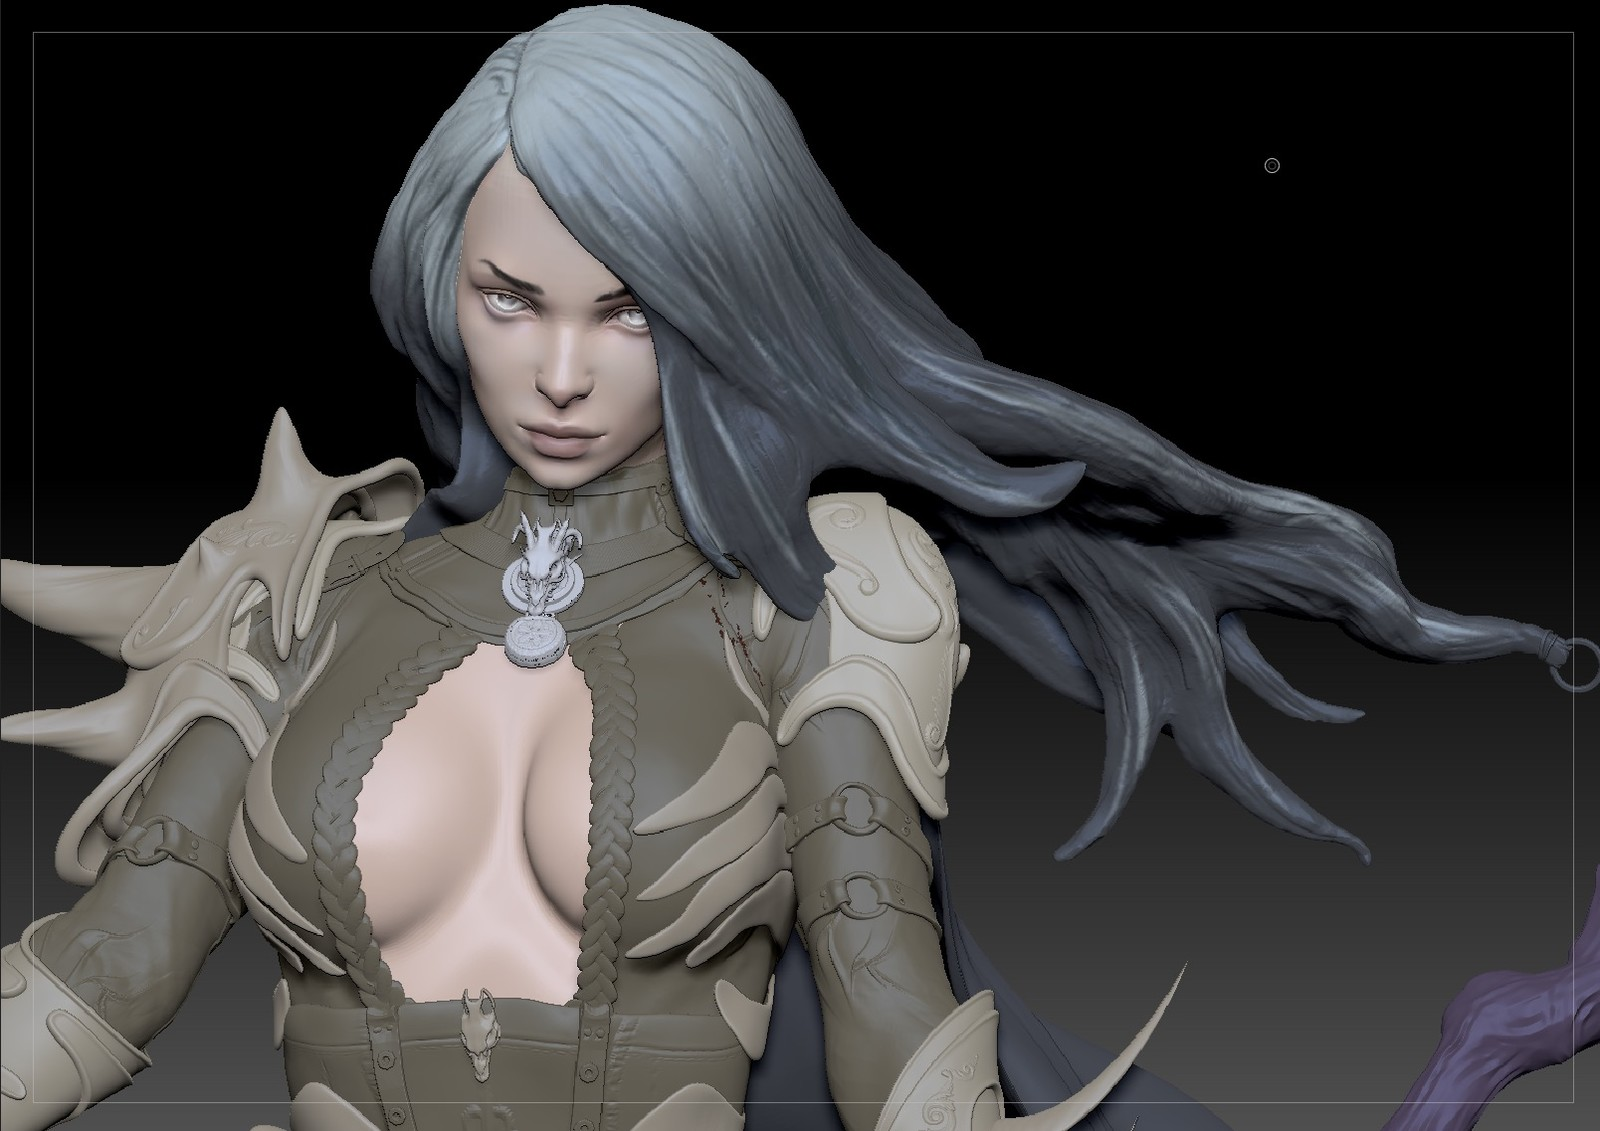 This was one of the first steps of polypainting the model. The stare of this screenshot was a critical milestone in the process as this became a look I was going for in the final version as well.